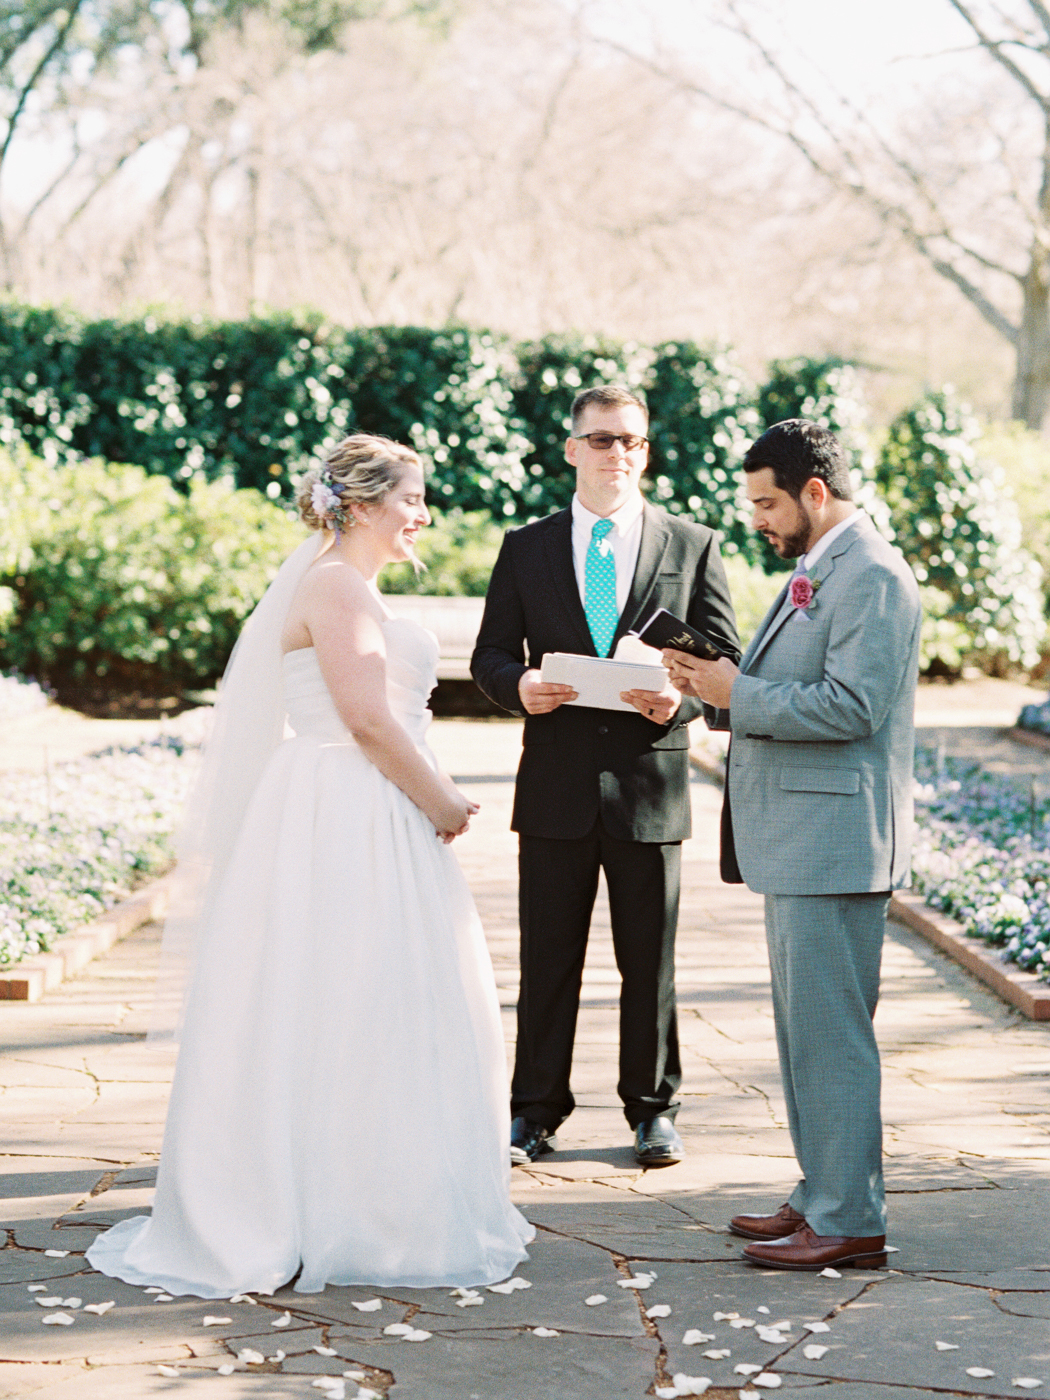 Dallas Arboretum & Botanical Garden Wedding Photos - Fine Art Film Photography